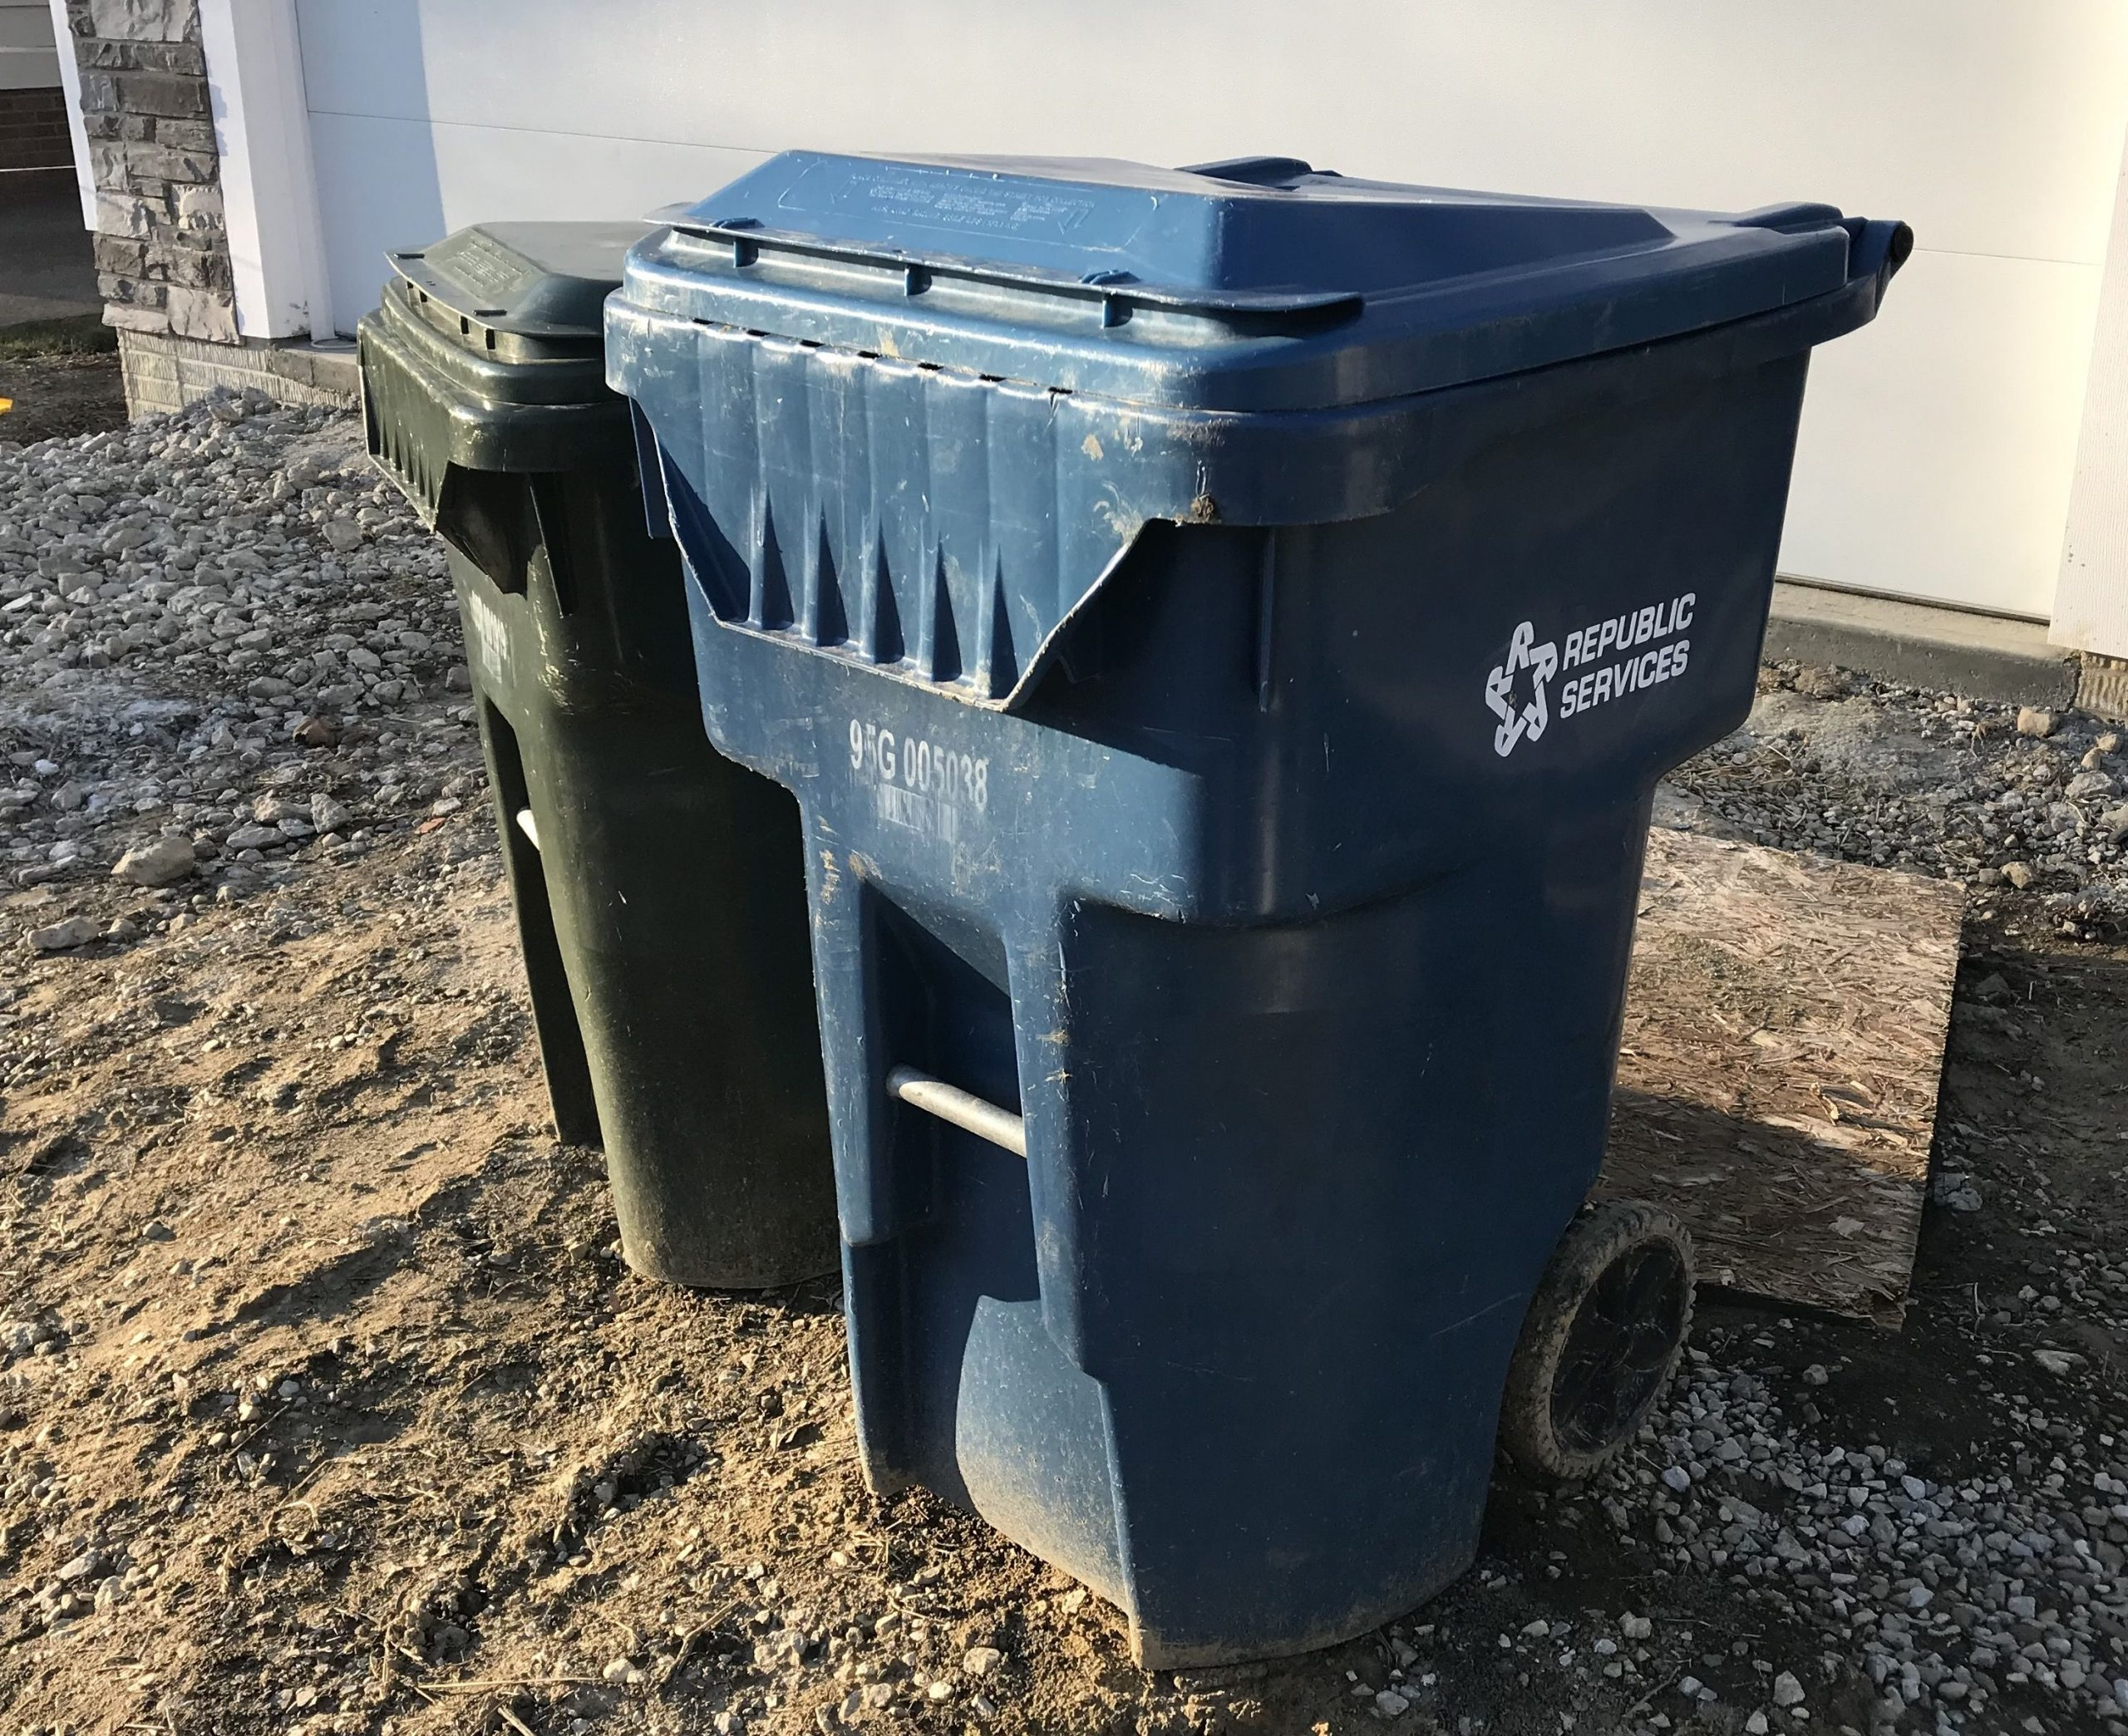 Fairview Park To Approve One-Year Garbage Contract, With Eye